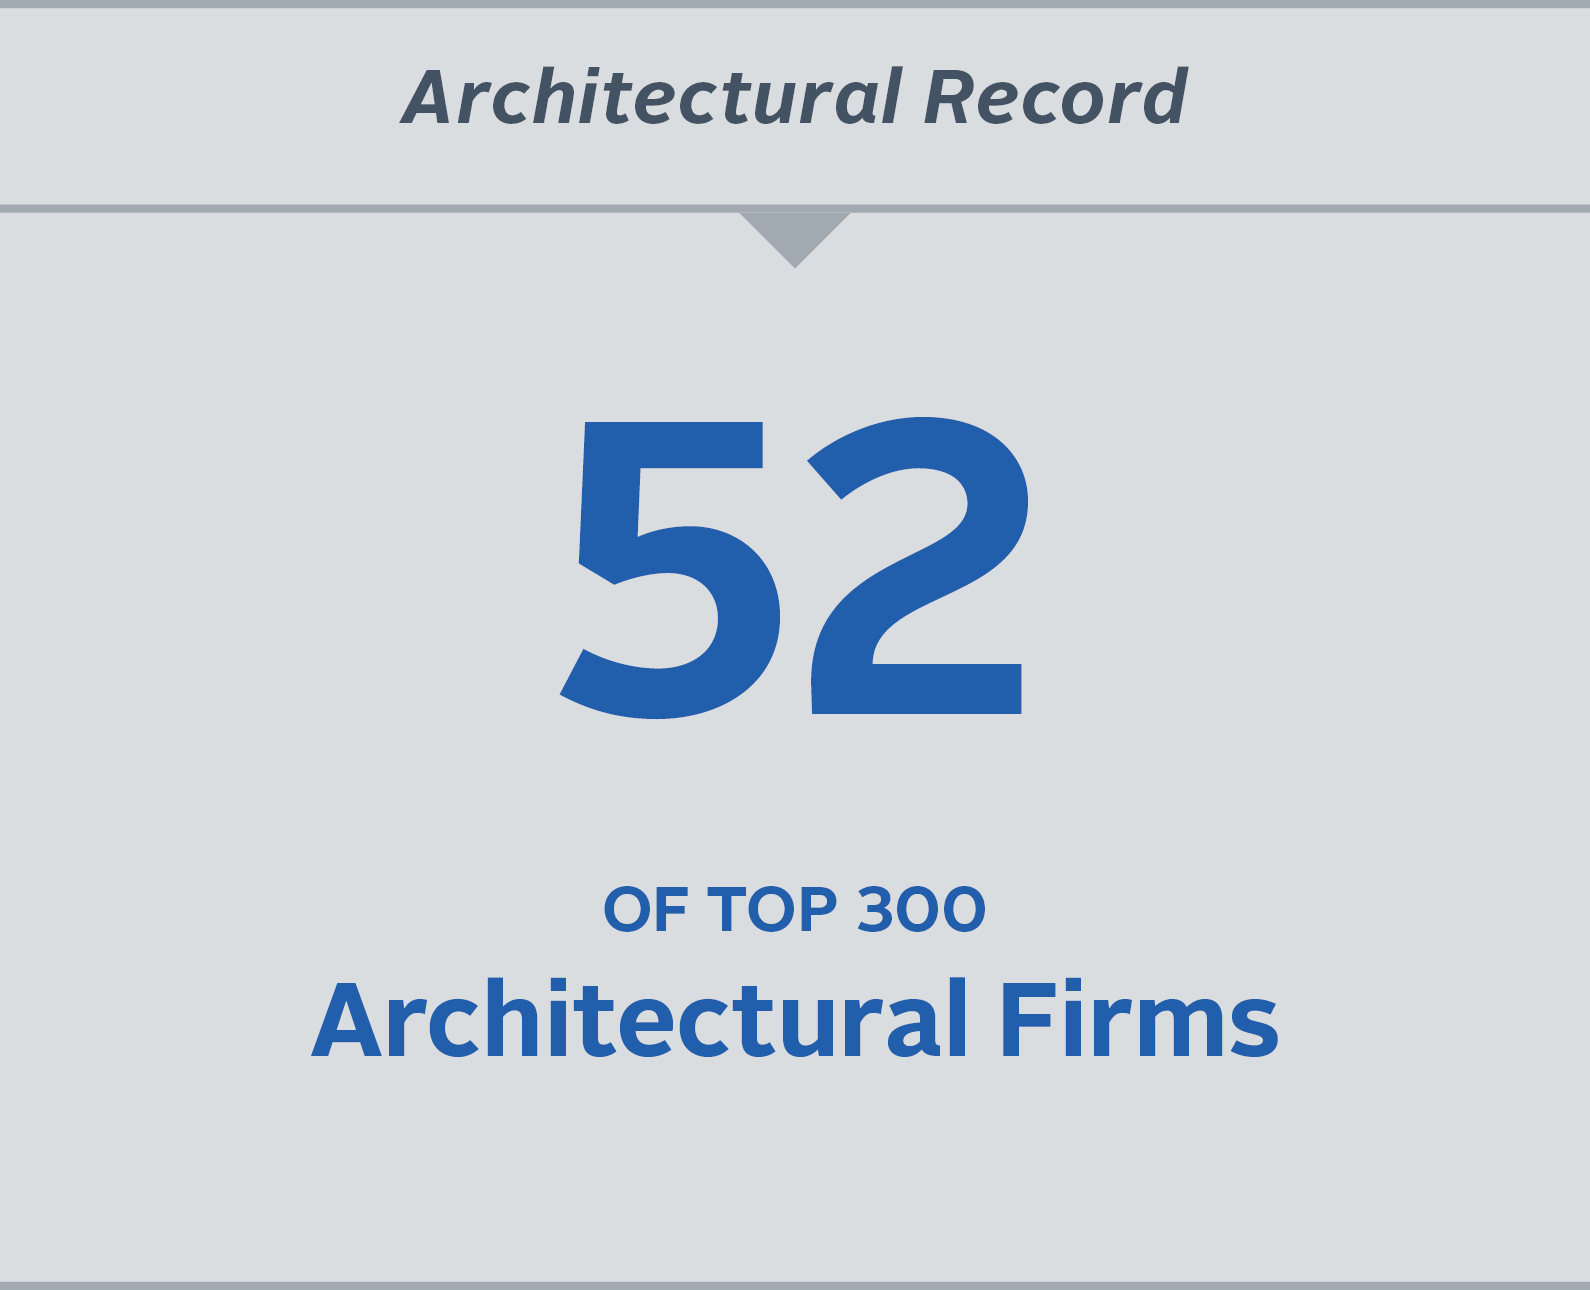 Number 52 of top 300 Architectural Firms.